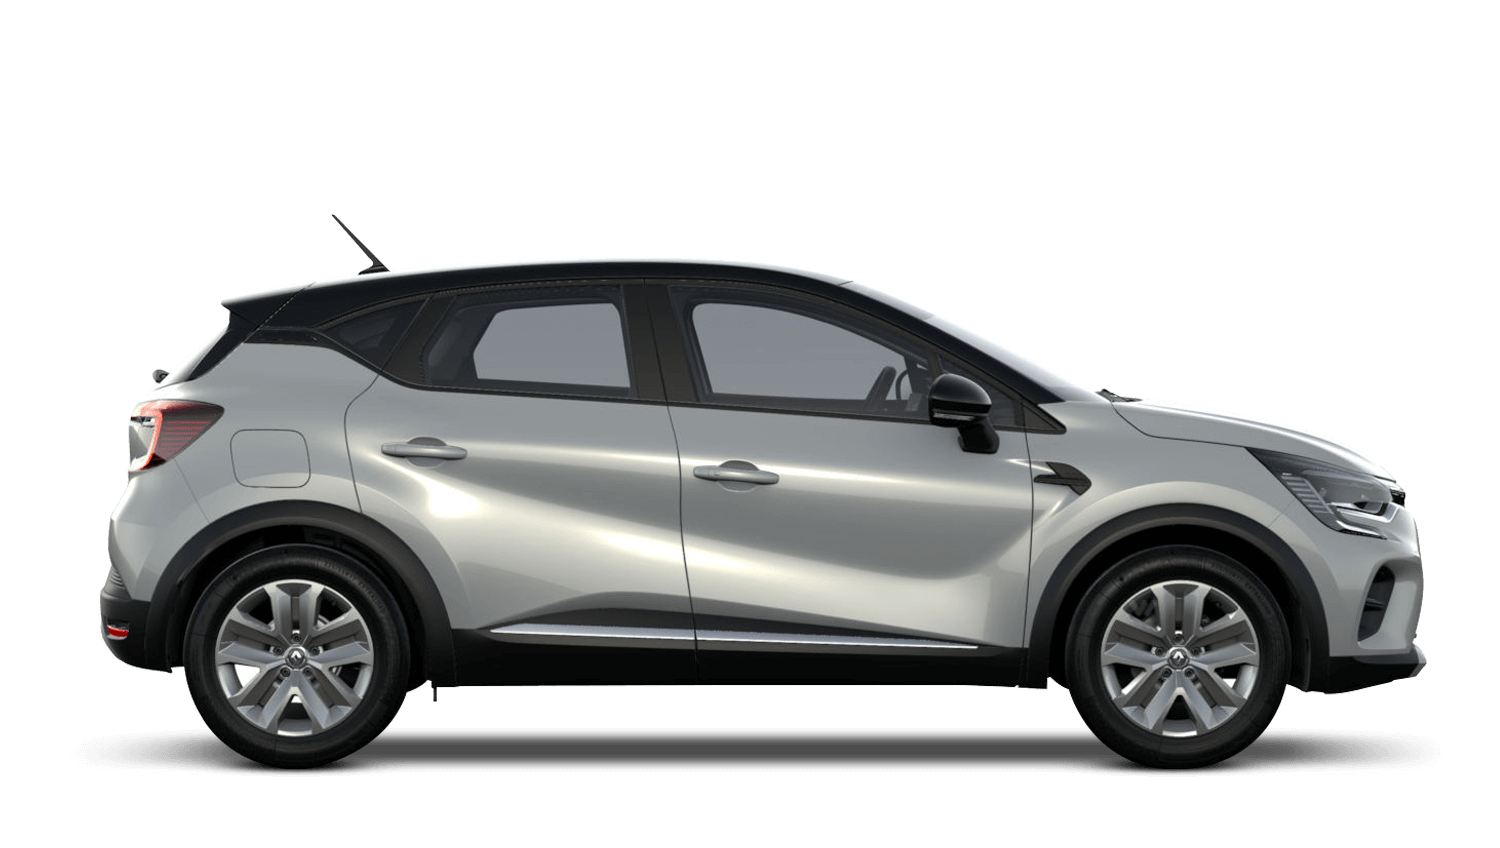 Highland Grey with Diamond Black Roof All-New Renault CAPTUR